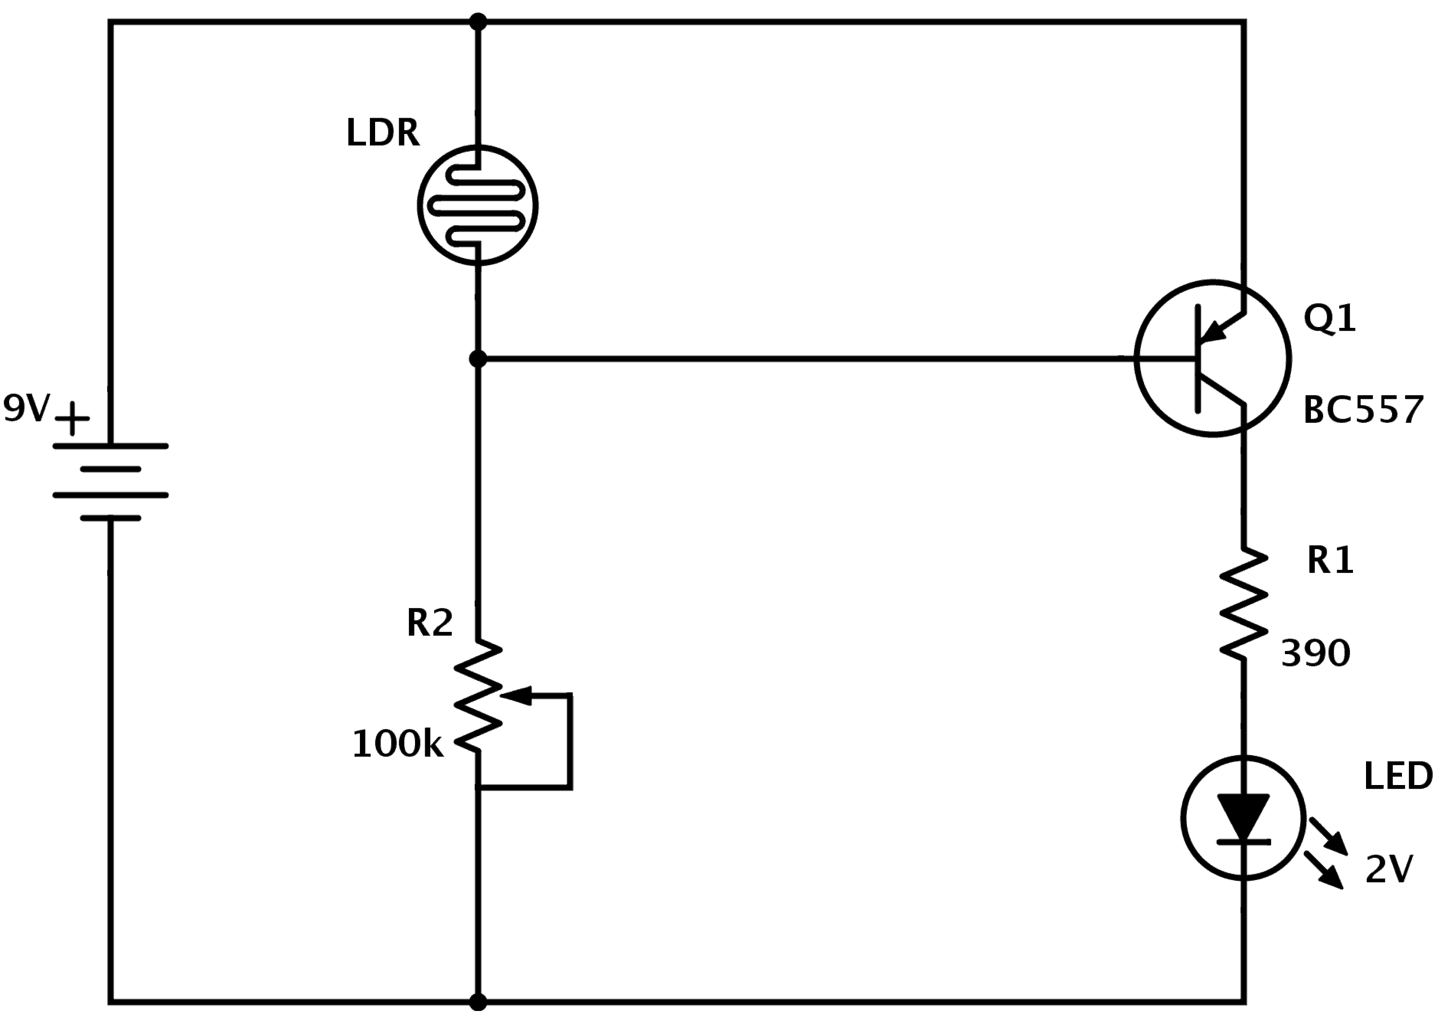 Ldr Circuit Diagram Build Electronic Circuits Current Flows Through Them Heres An Example With Three Pnp Transistor Dark Detector